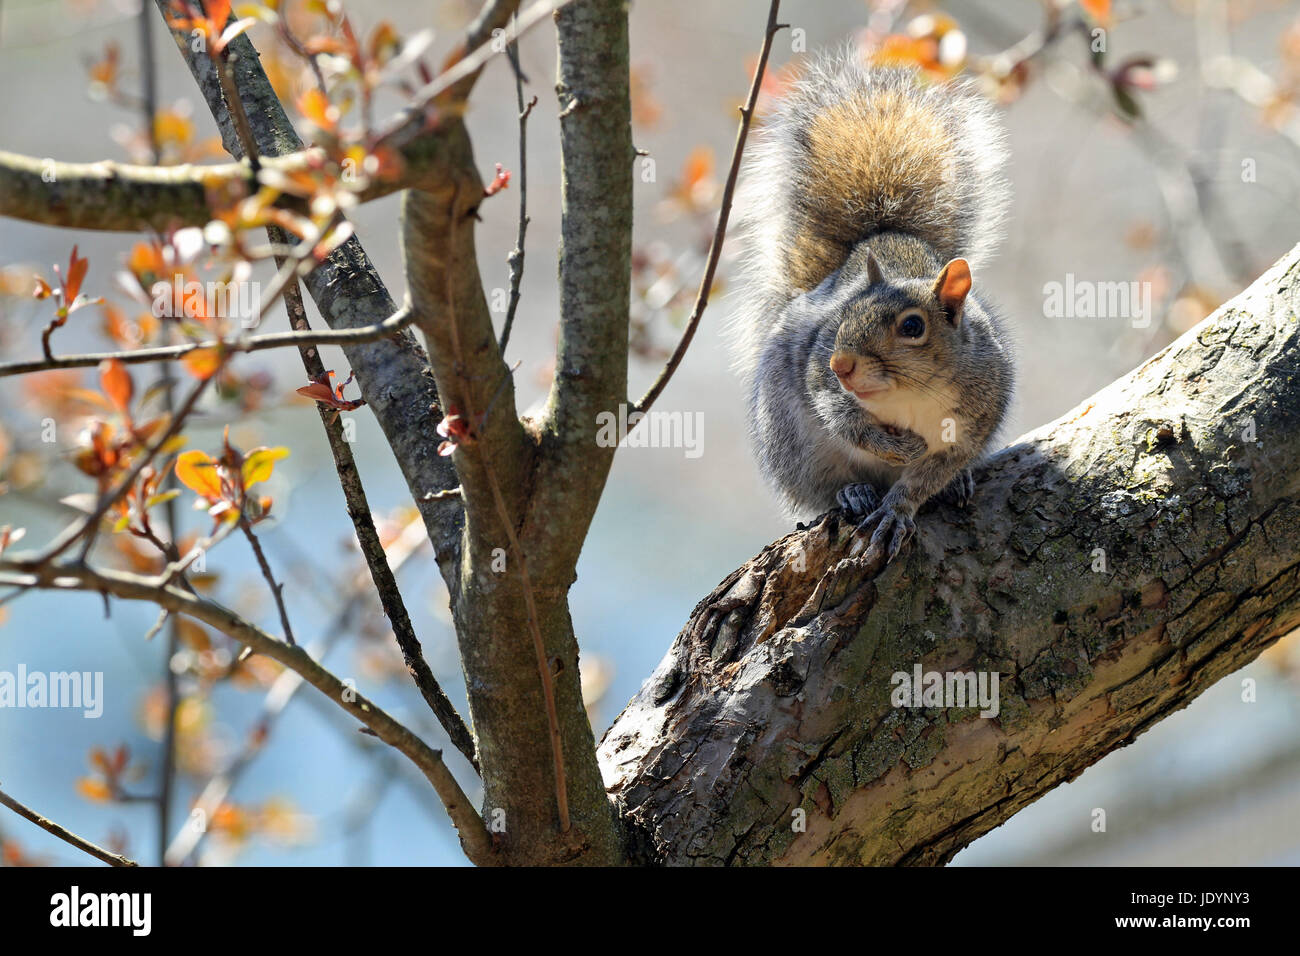 Eastern gray squirrel (Sciurus carolinensis) resting on a limb of a budding crab apple tree in early Spring Stock Photo